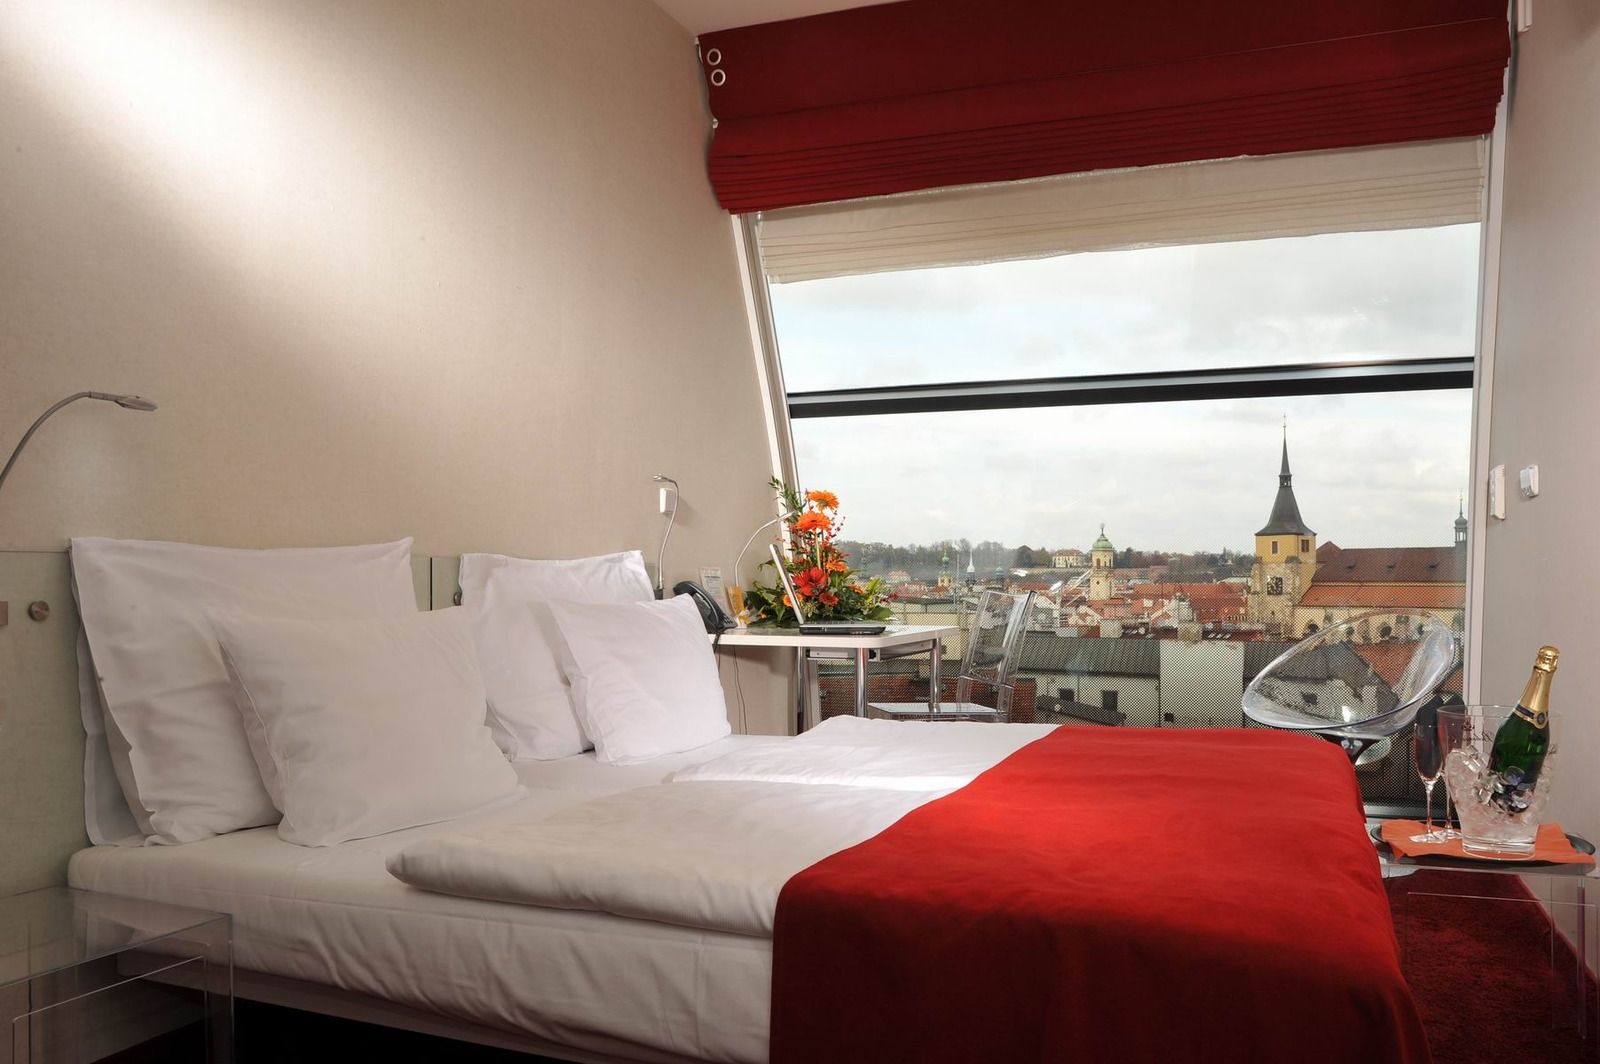 Design metropol hotel prague for Design prague hotel